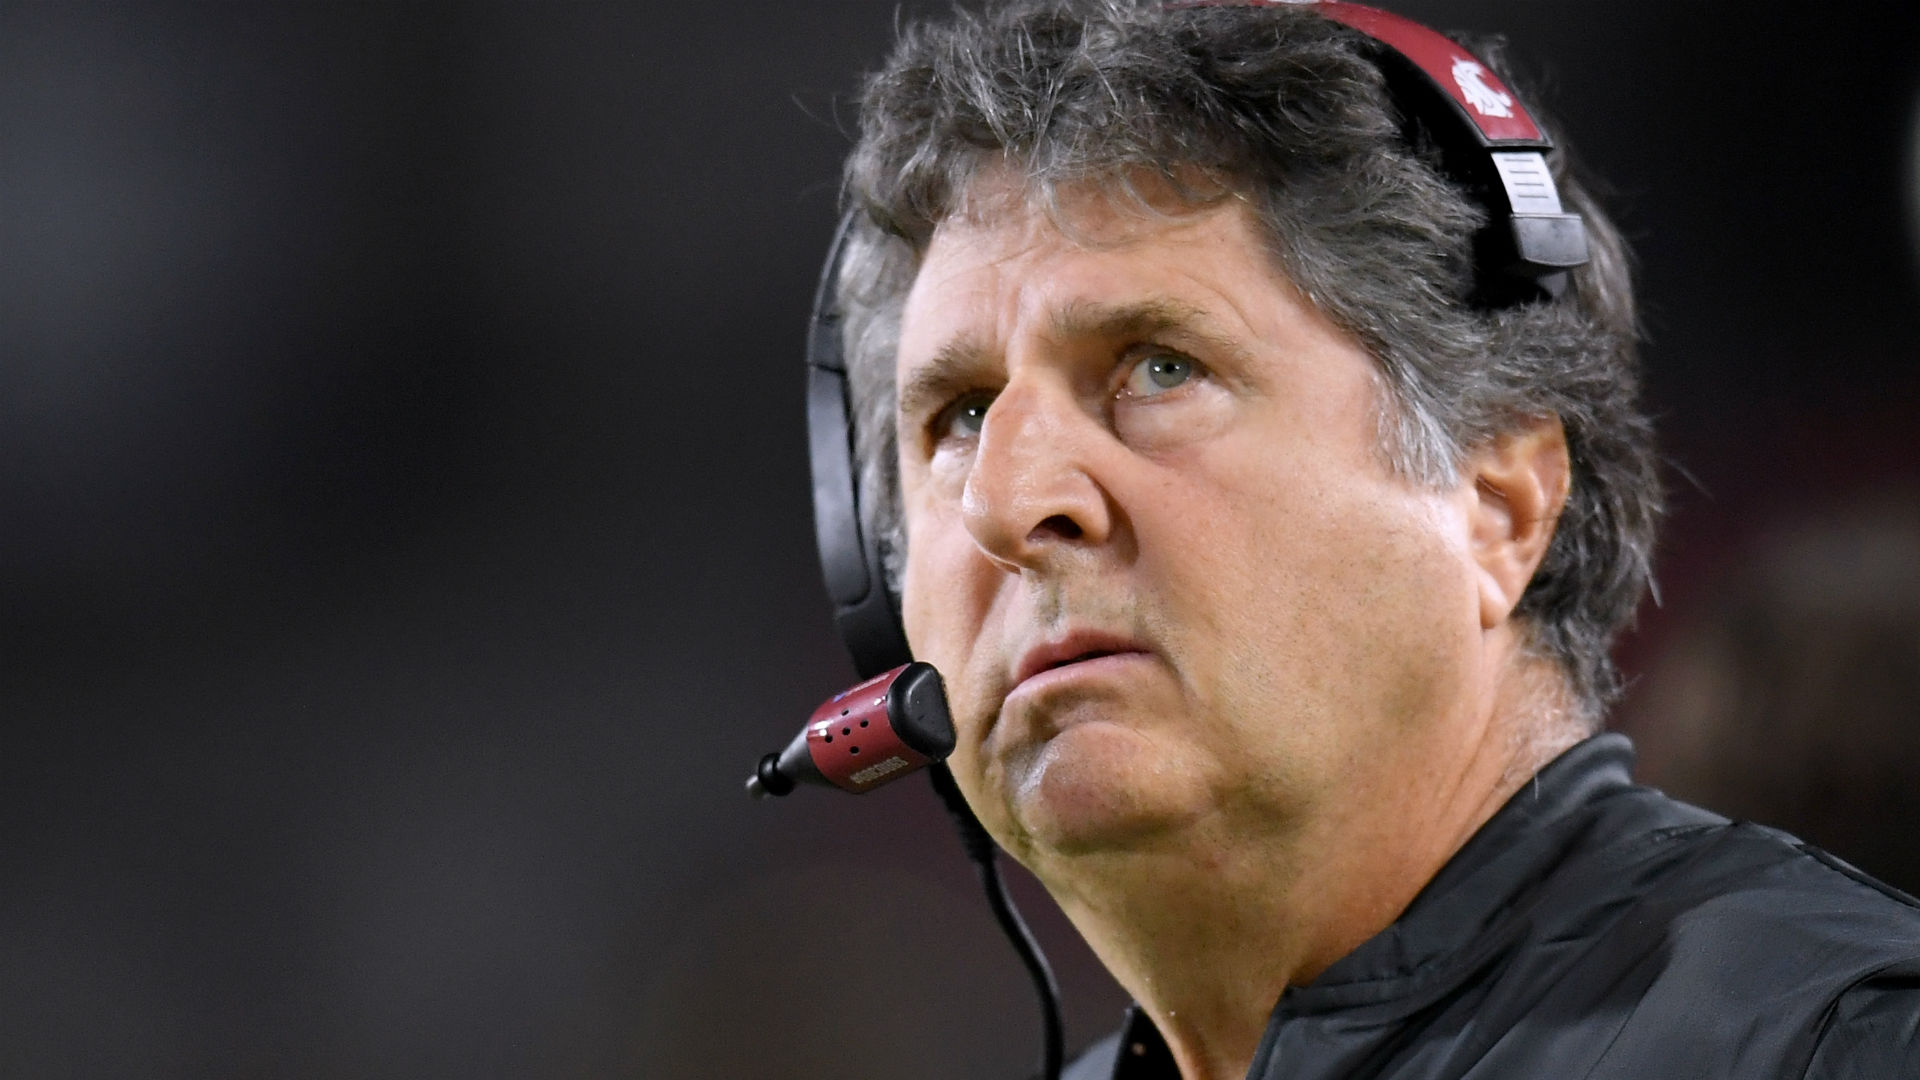 Mike Leach apologizes for 'offensive' tweet that included image of noose (UPDATED)